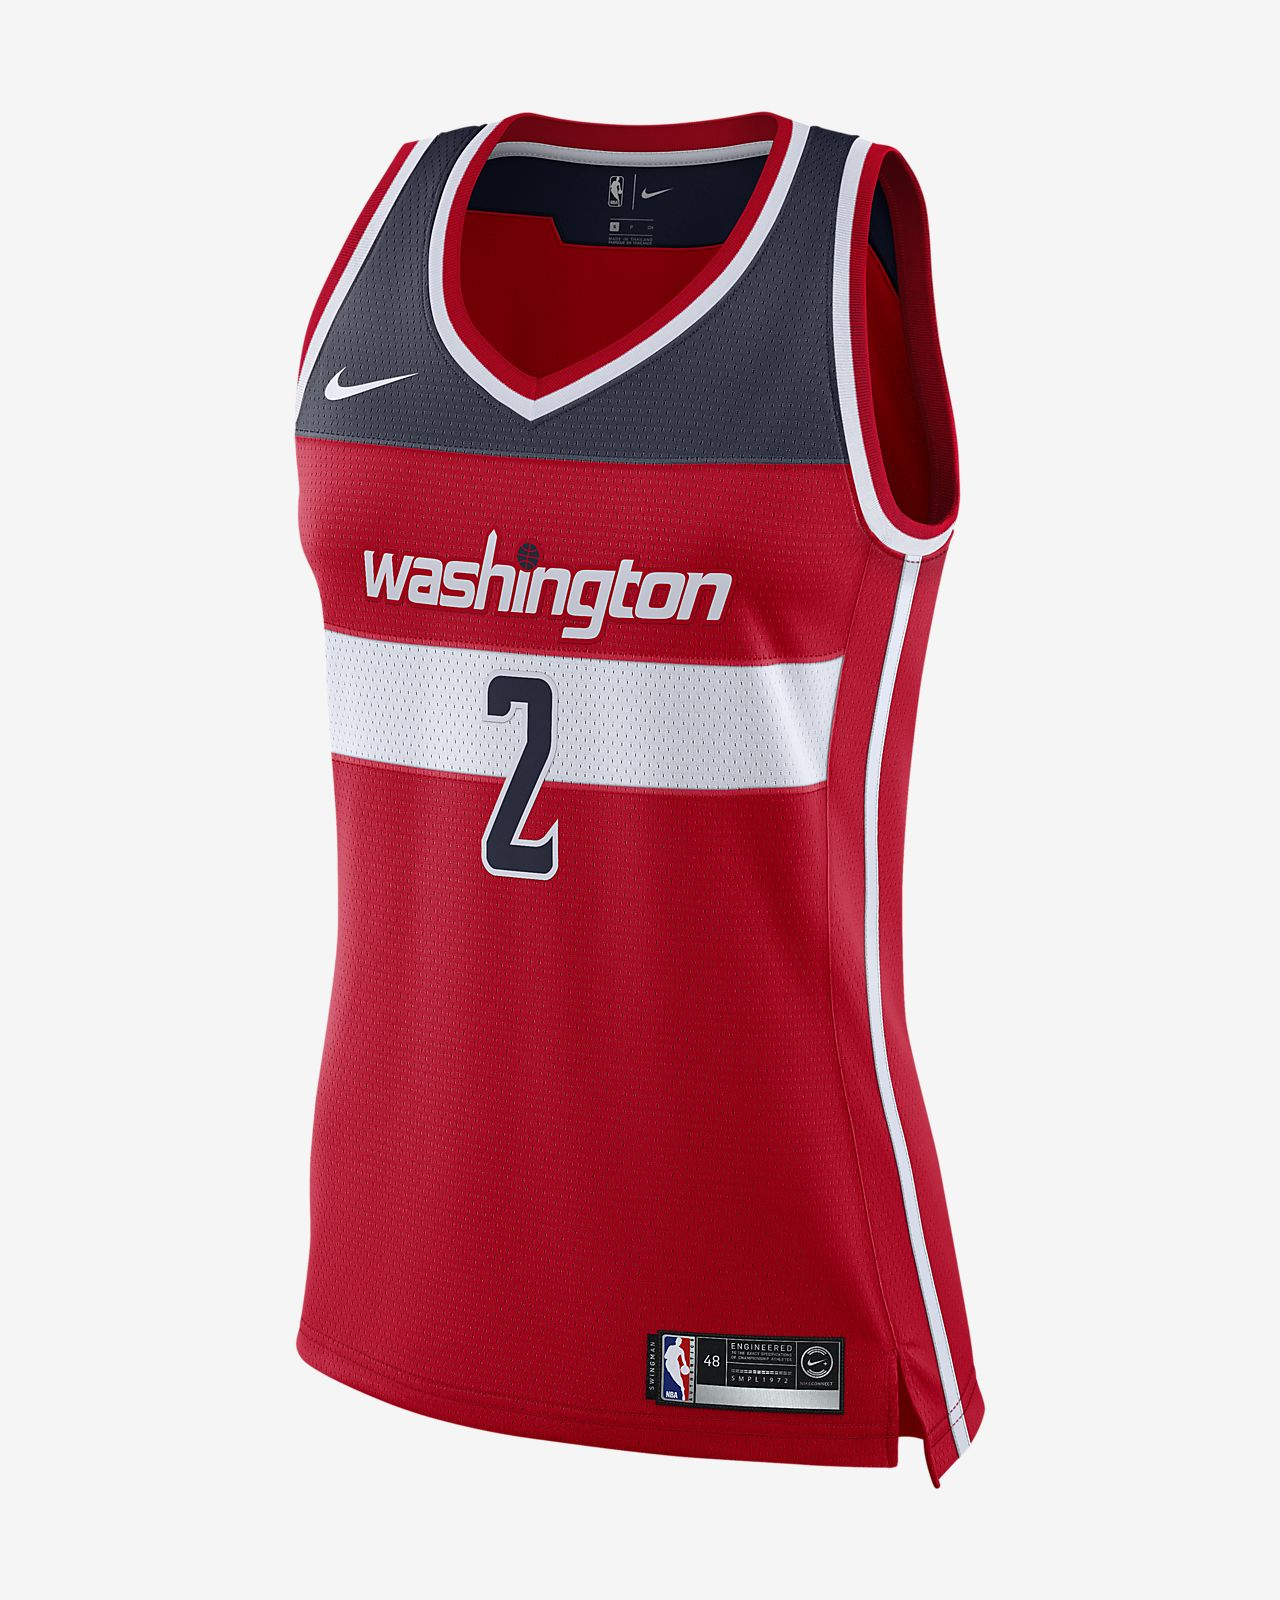 new product 198ca 7840d Women s Nike NBA Connected Jersey. John Wall Icon Edition Swingman (Washington  Wizards)